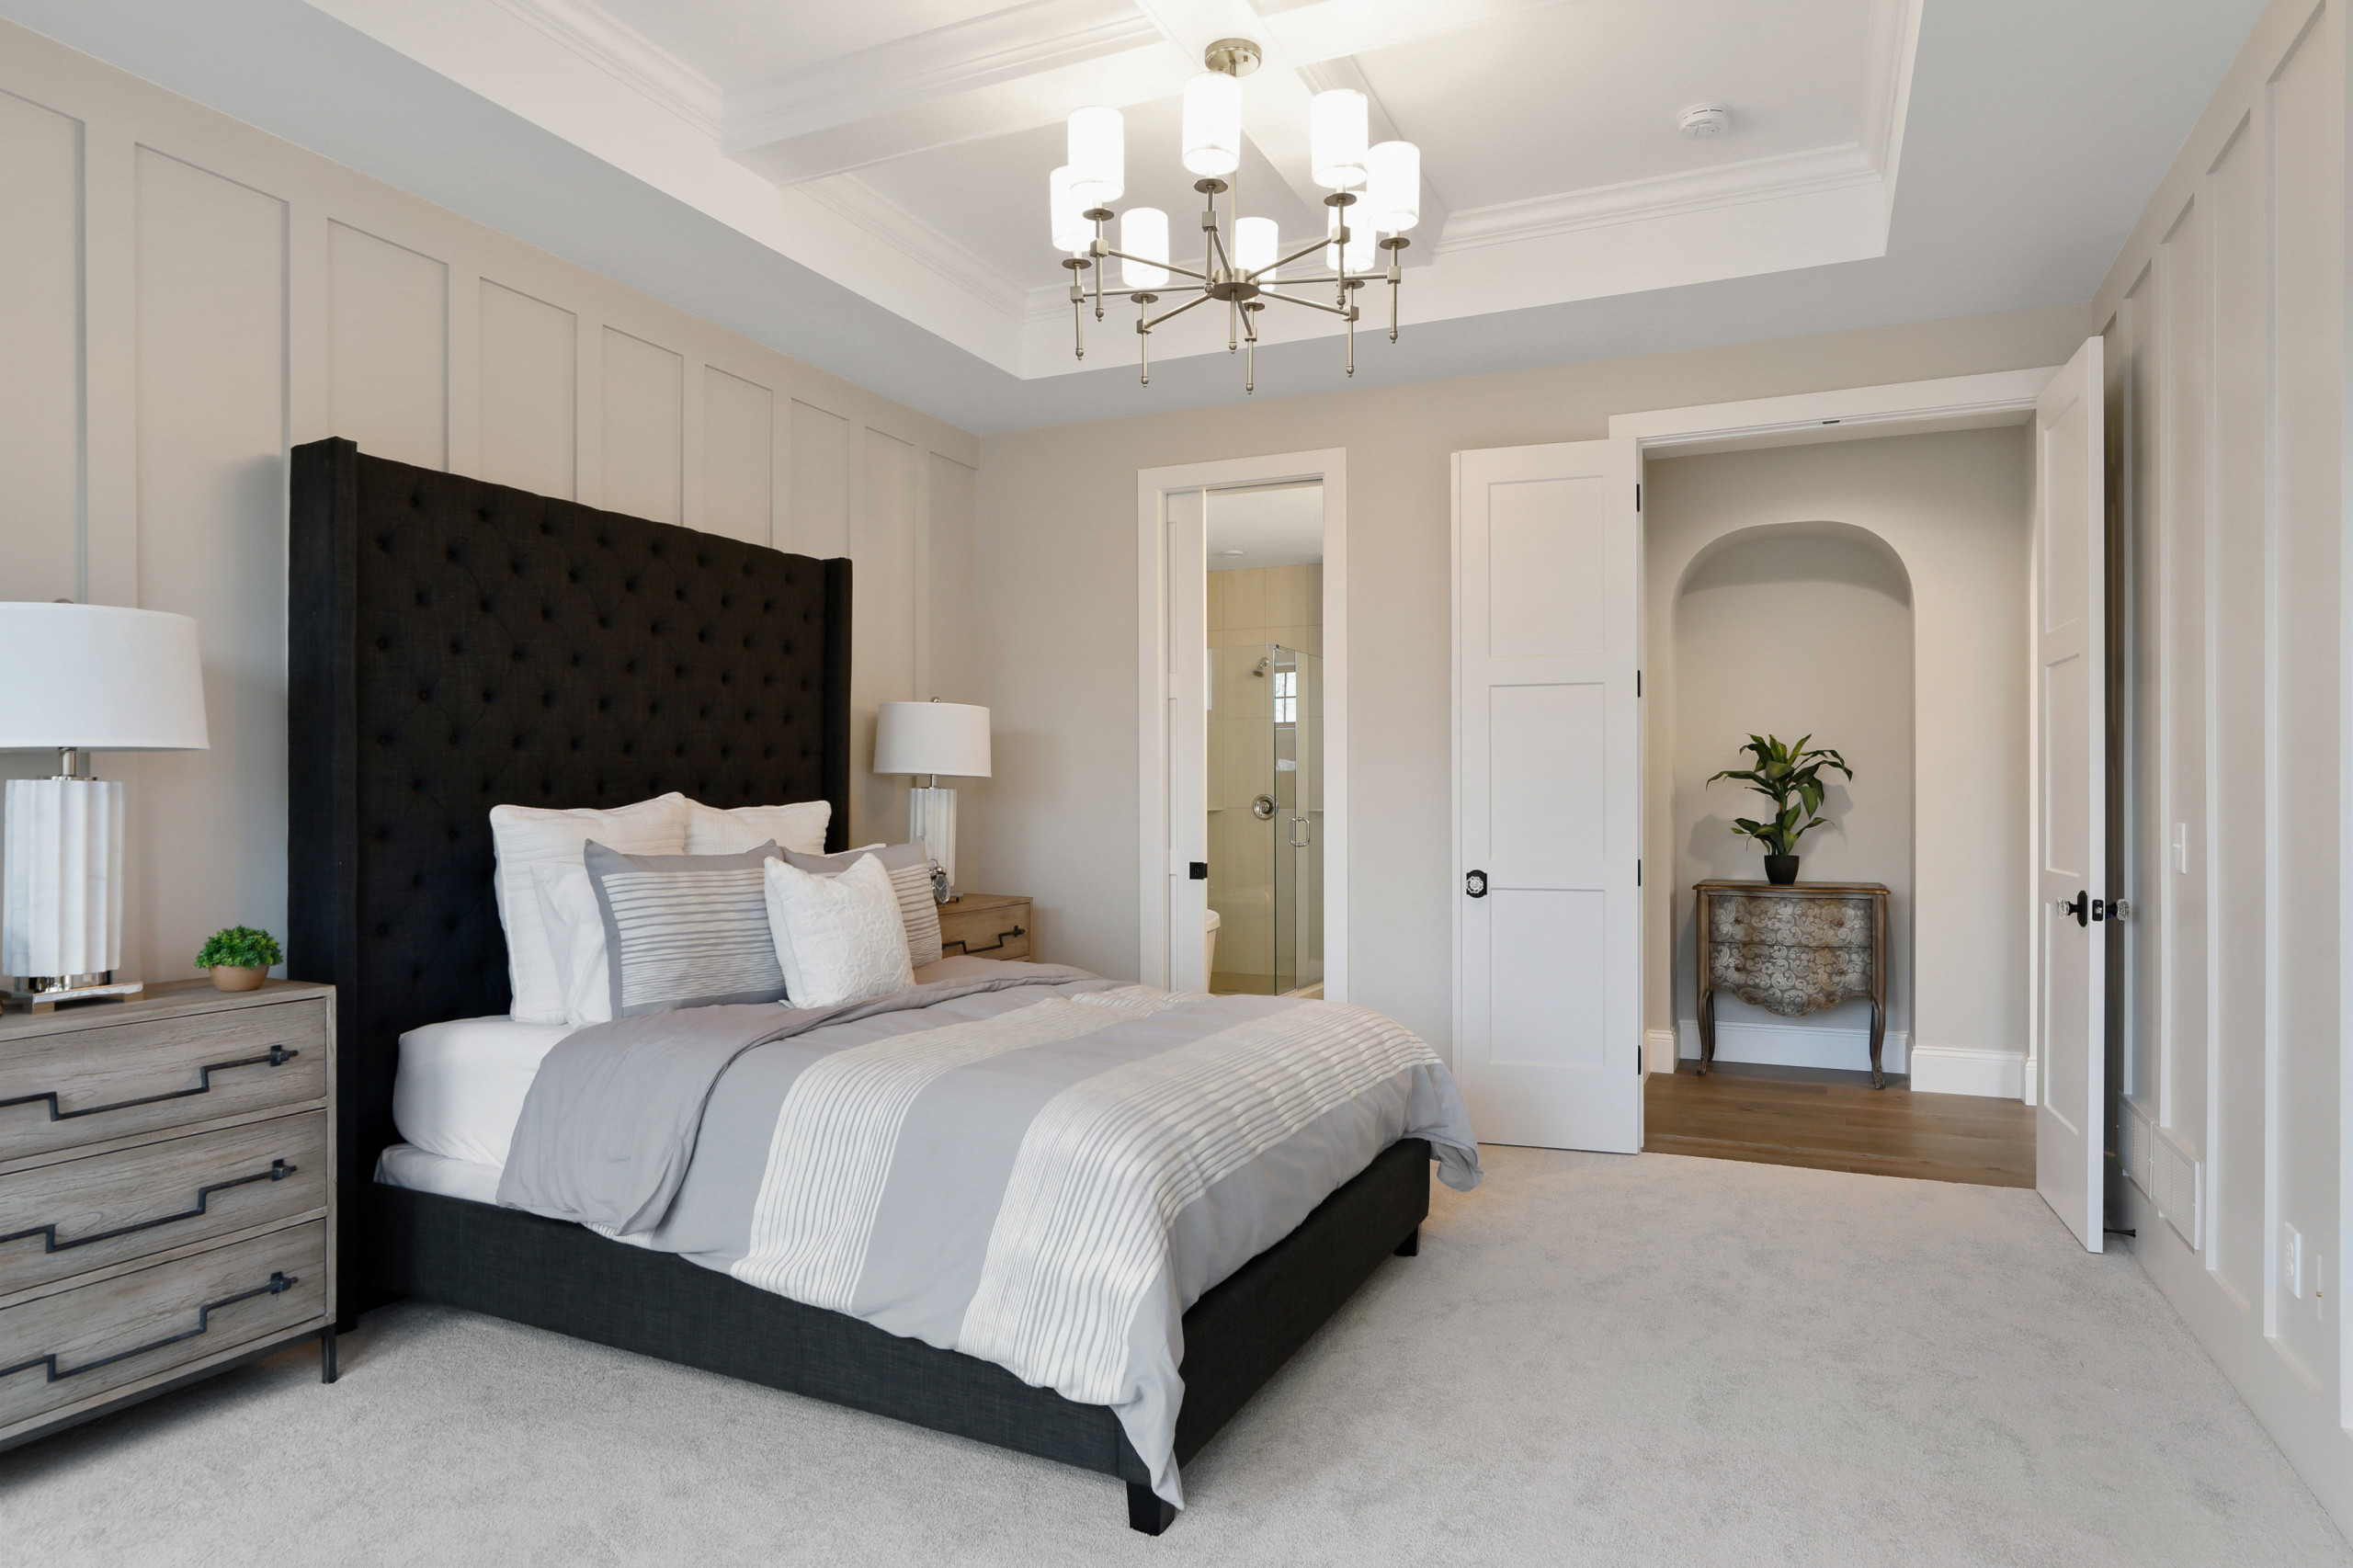 75 Beautiful Wall Paneling Bedroom Pictures Ideas February 2021 Houzz